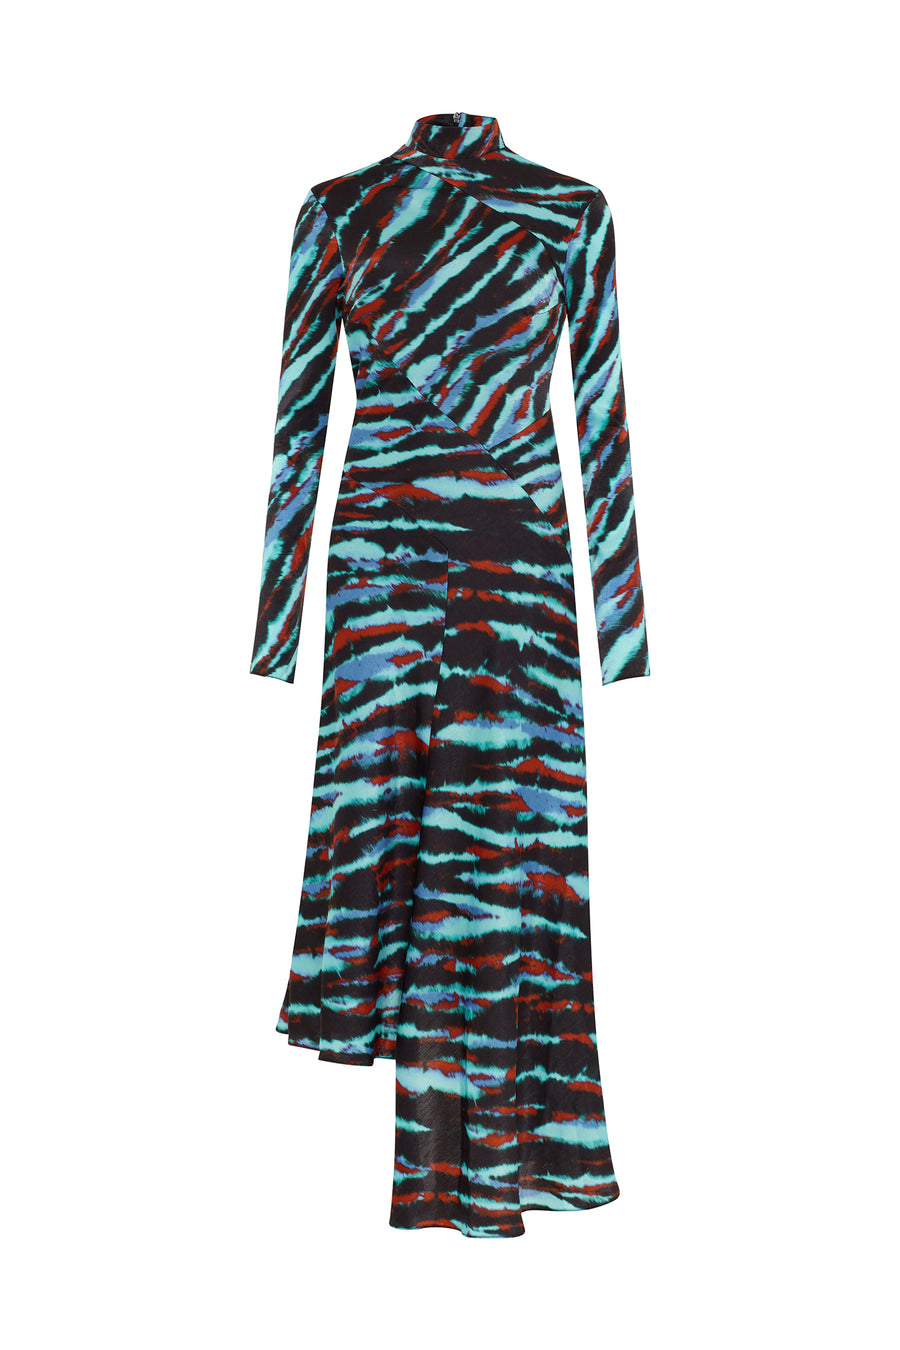 Blue Tie Dye Bias Twist Dress